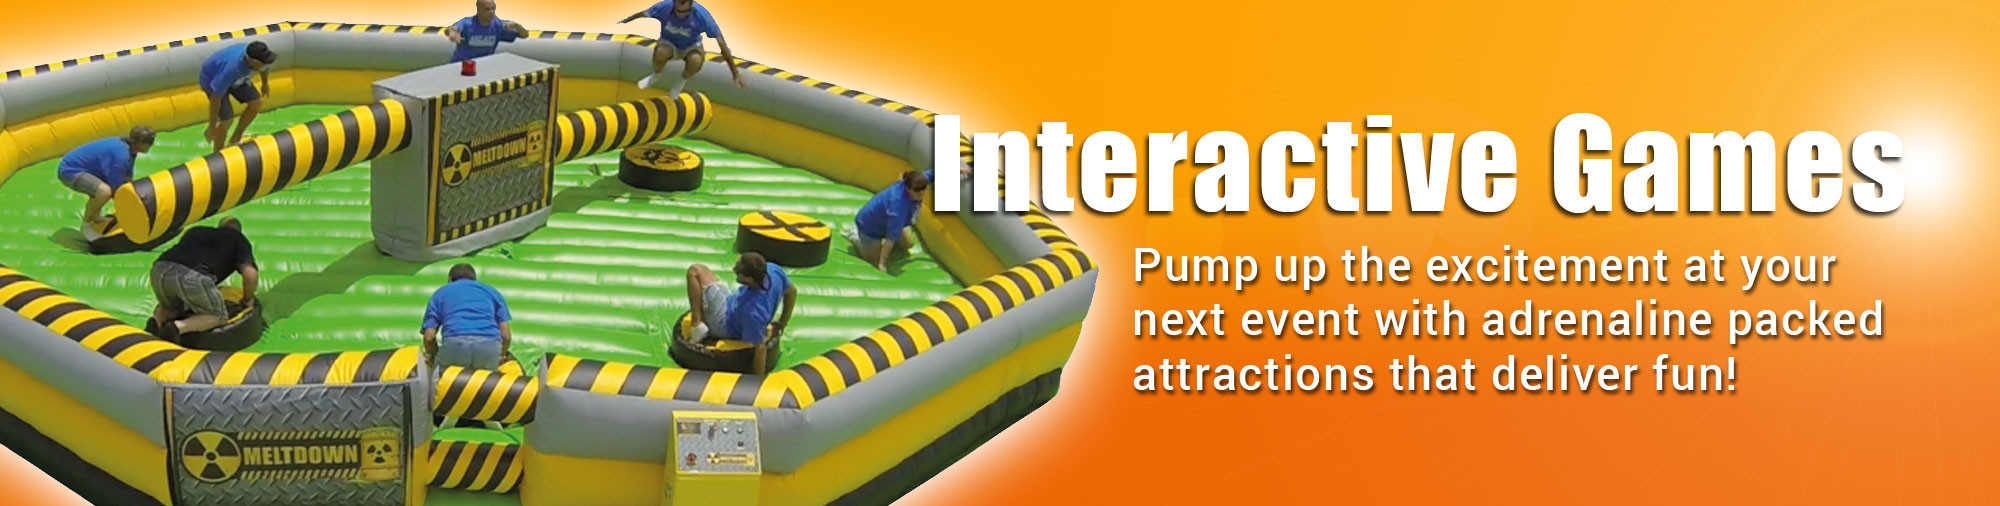 Kids Party Rental Houston  Bounce House & Party Rentals